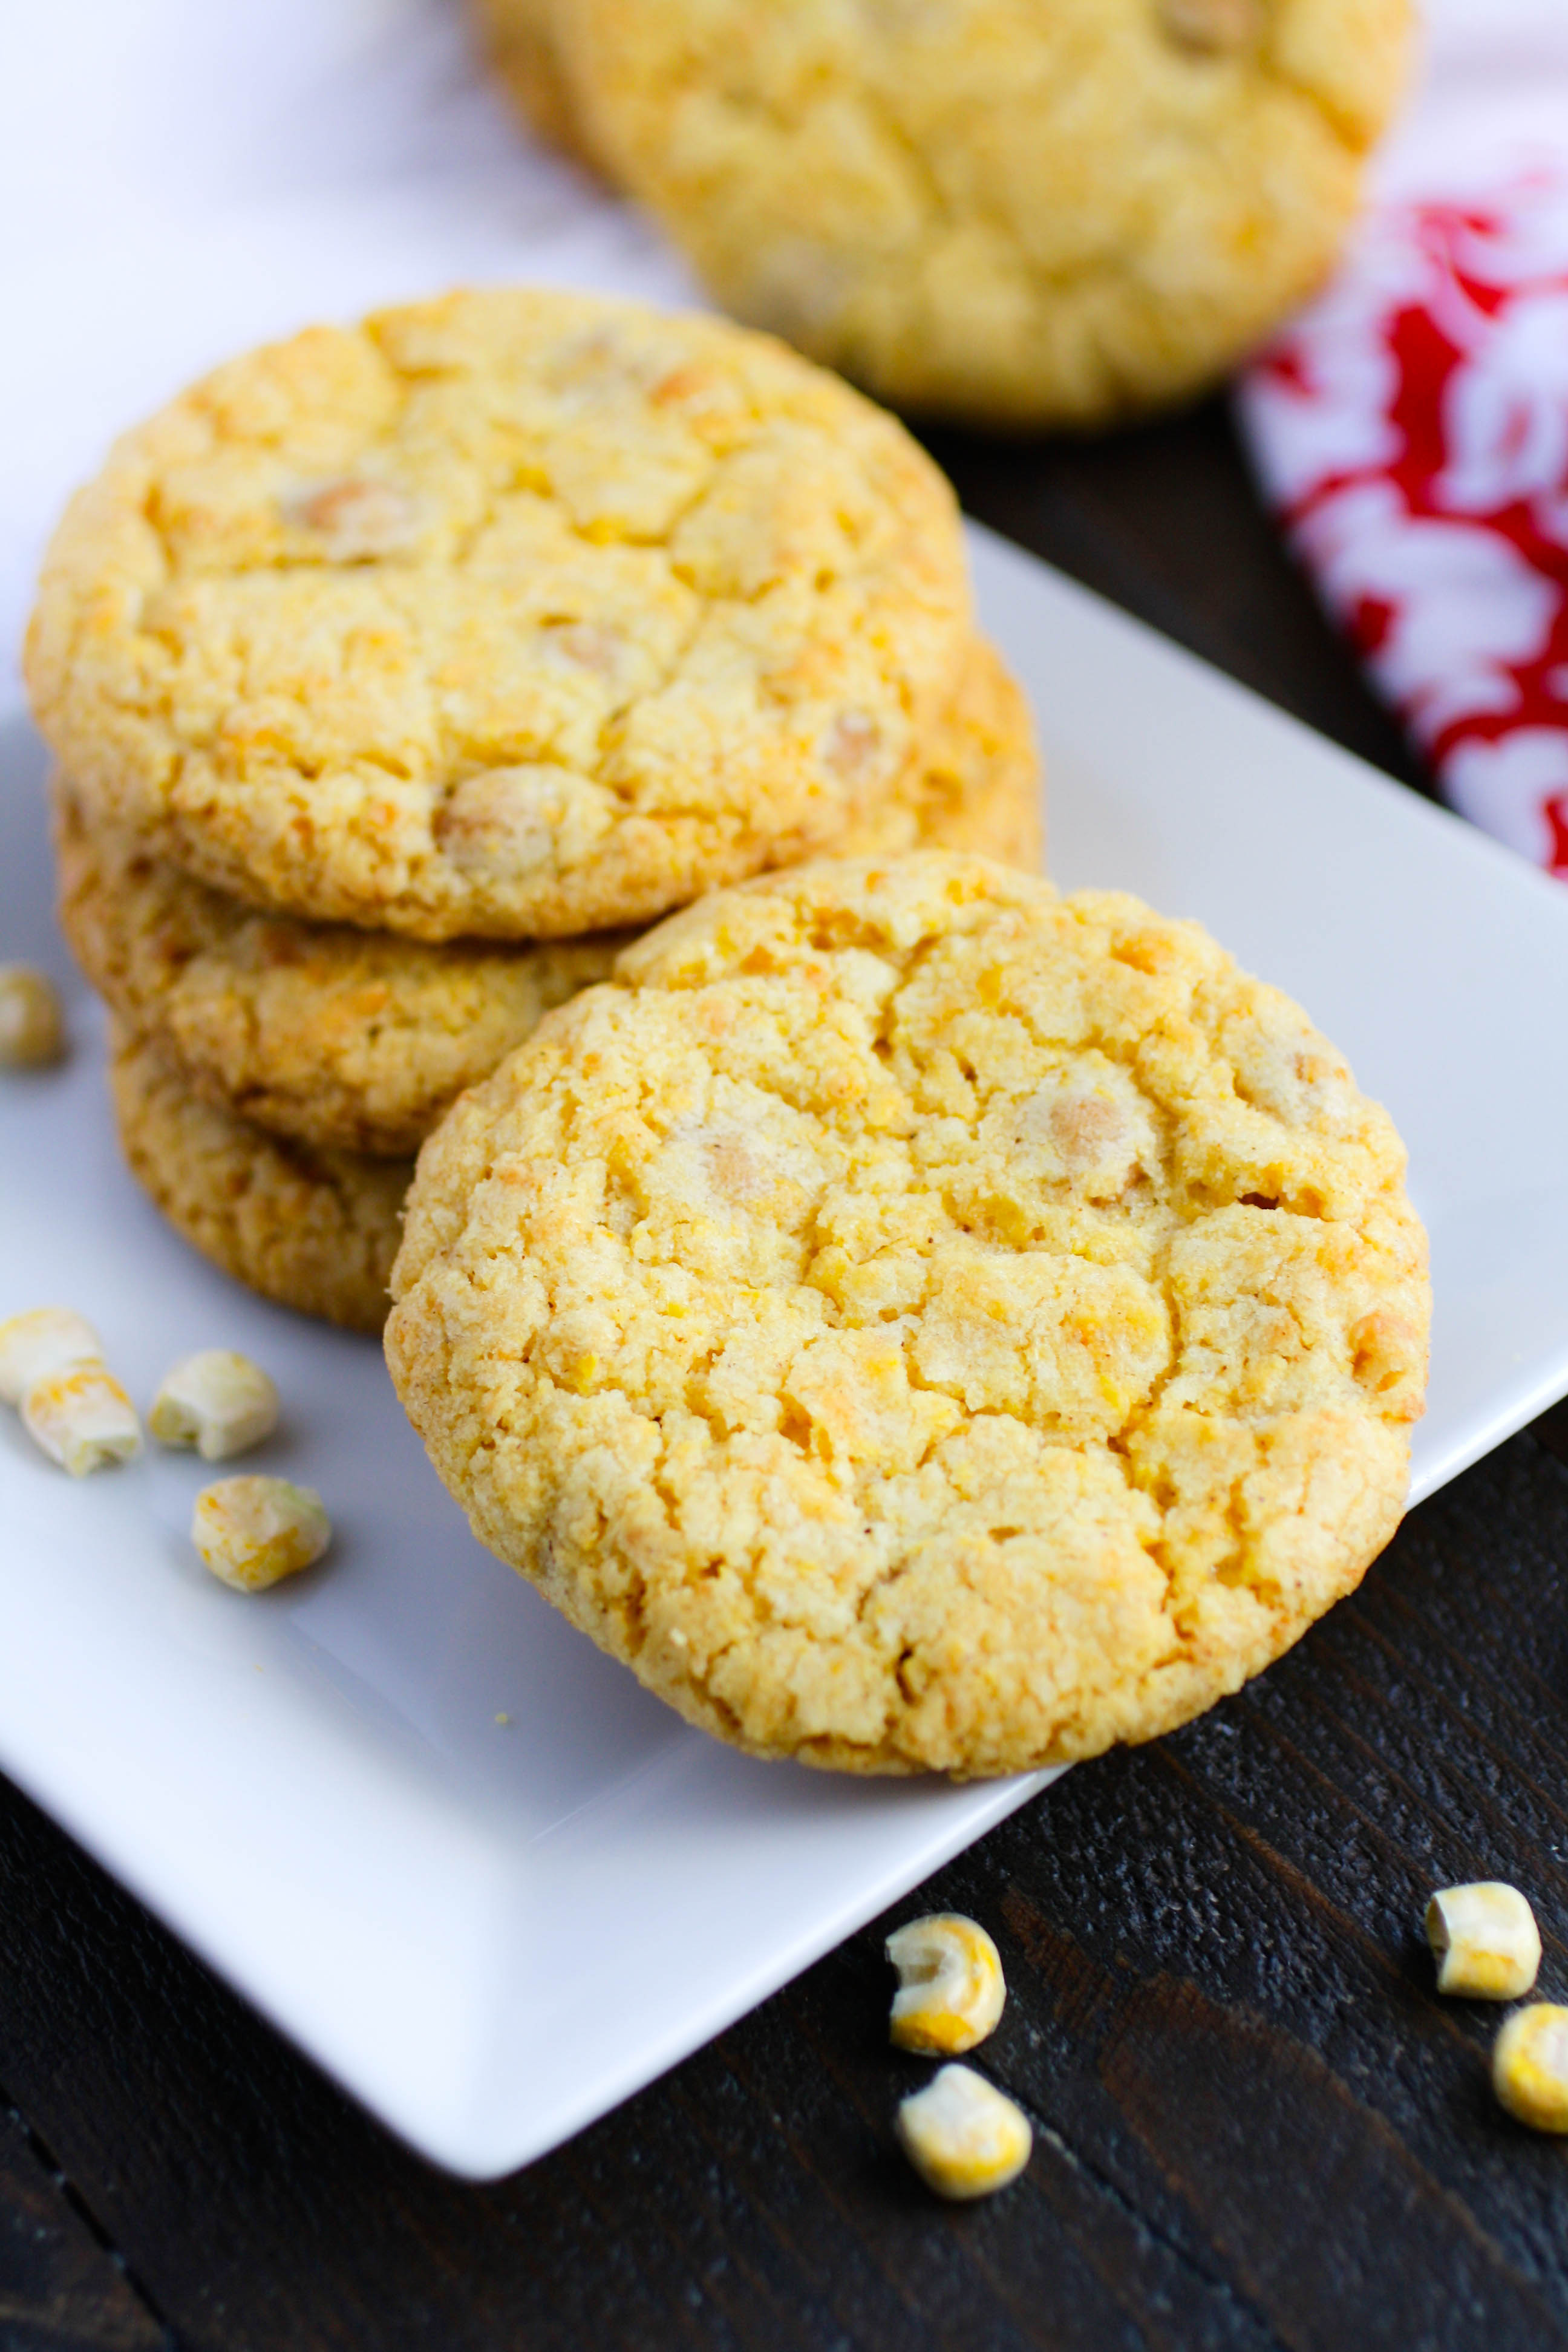 Spicy Caramel Corn Cookies are fantastic as a treat! You'll adore these bakery-style Spicy Caramel Corn Cookies!